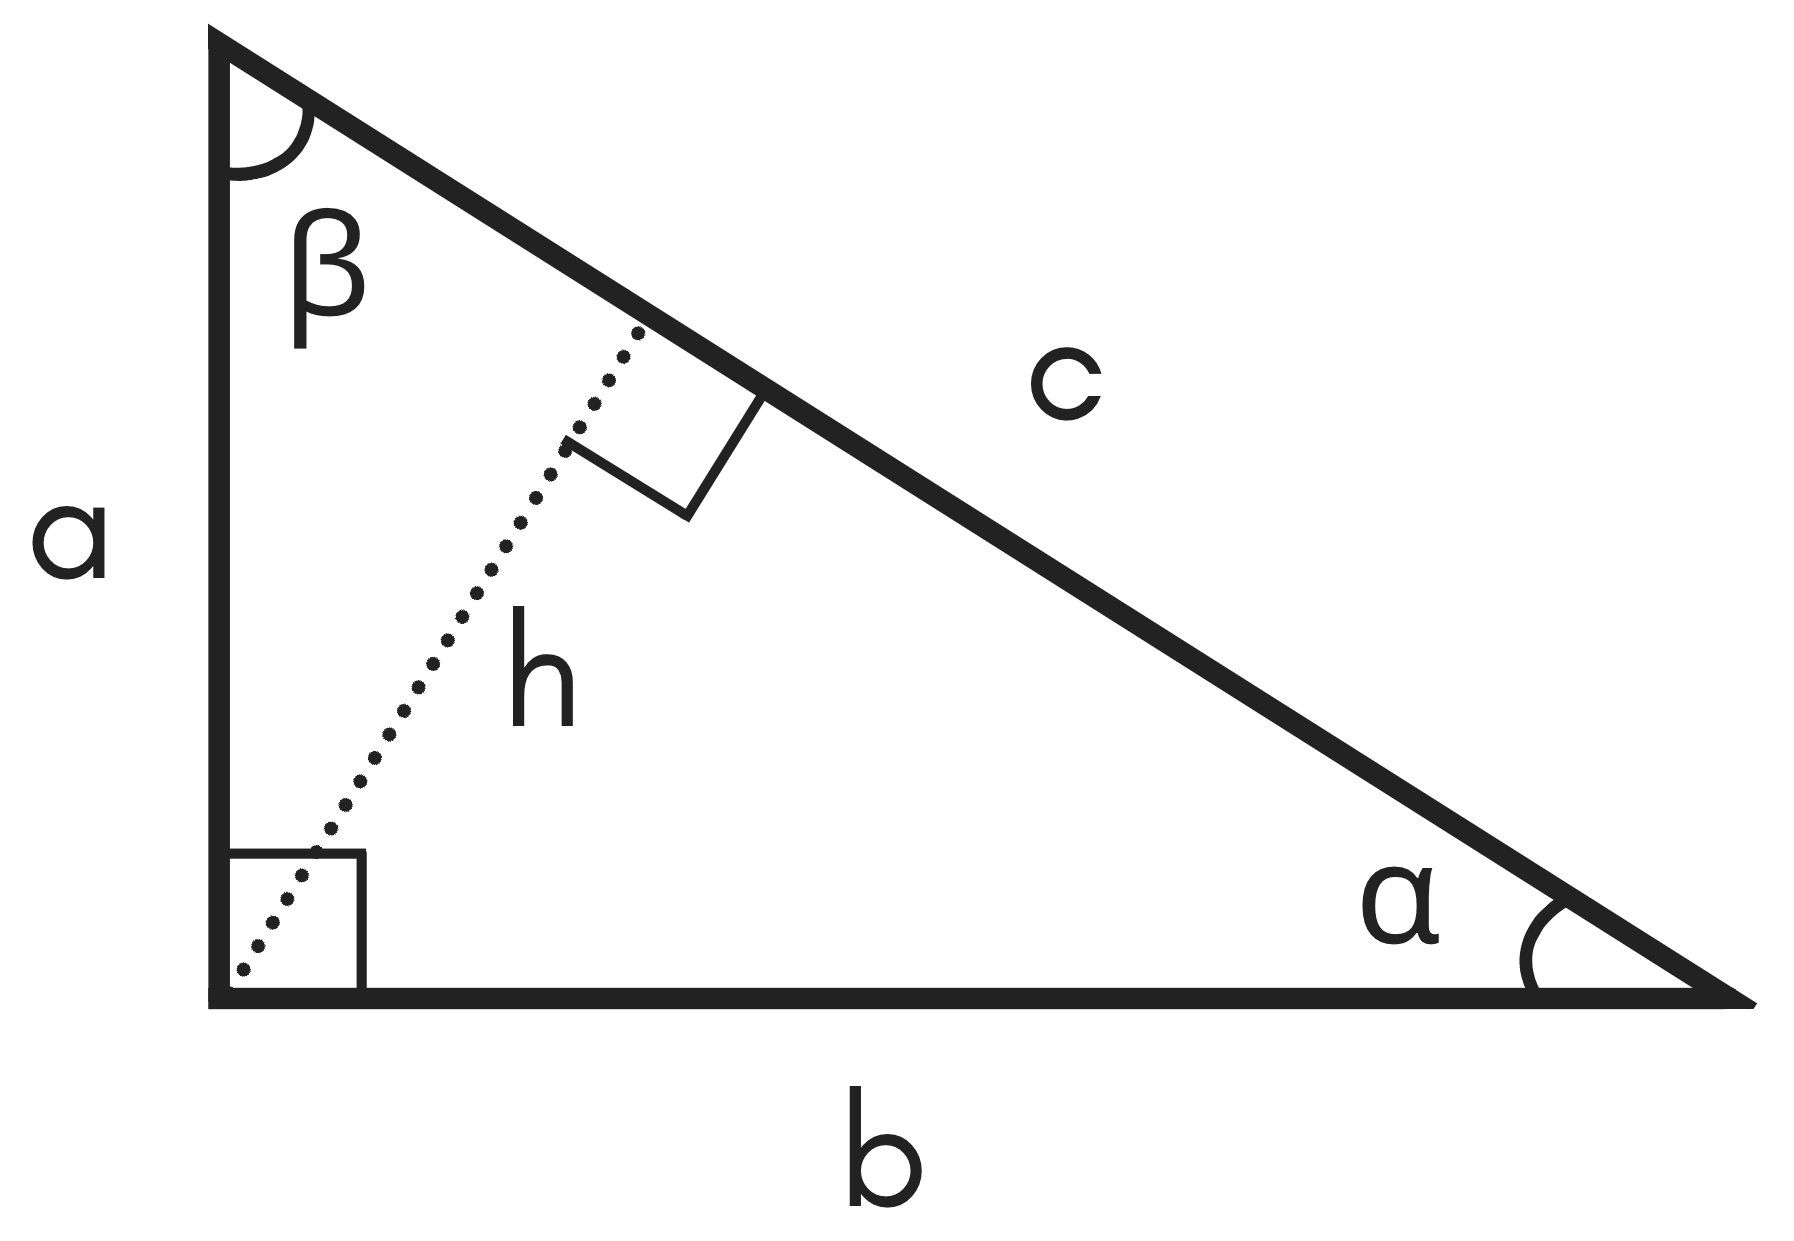 diagram of a right triangle showing legs a and b, hypotenuse c, angles alpha and beta, and height h